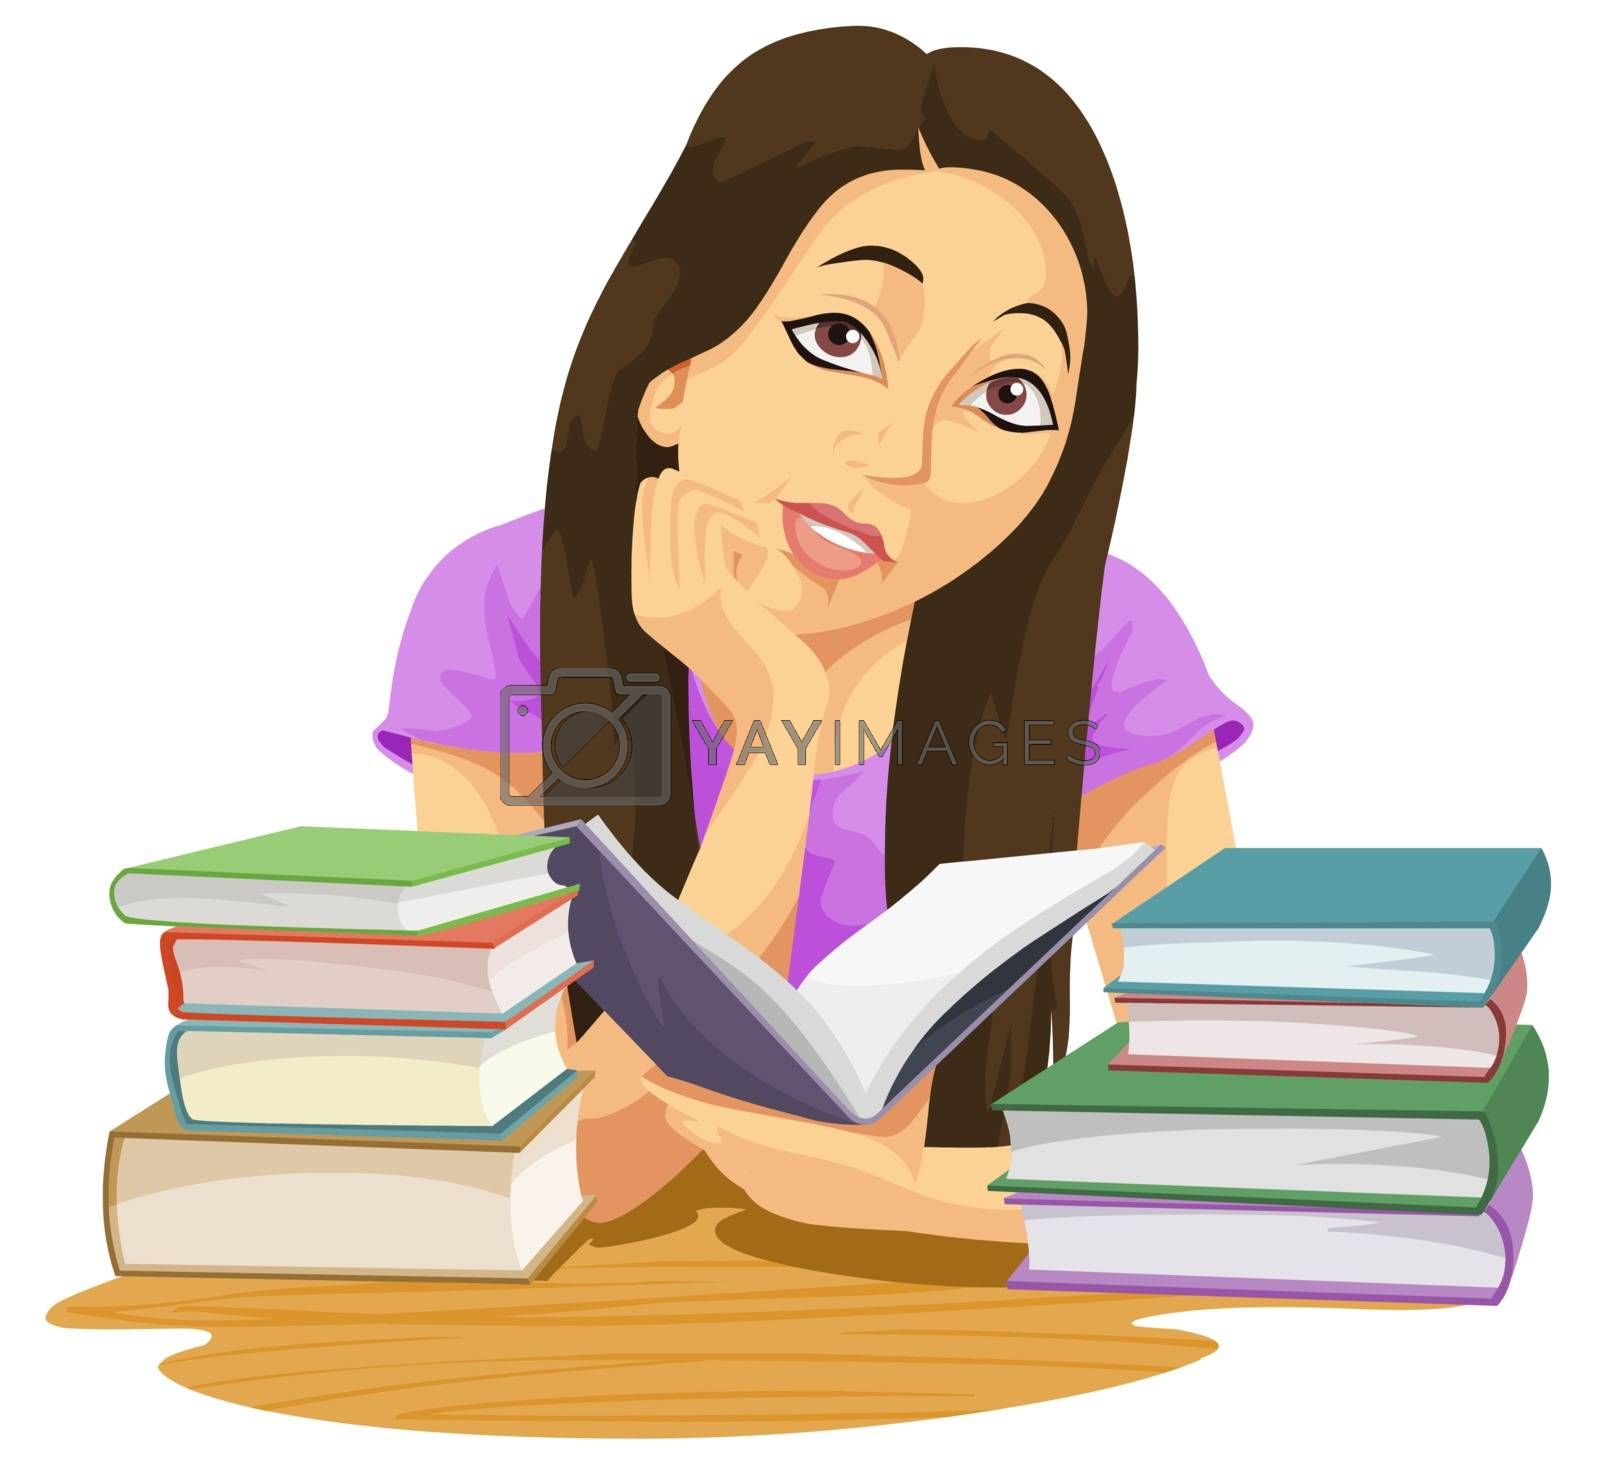 Education showing a girl reading a book and more books piled on the table, vector illustration